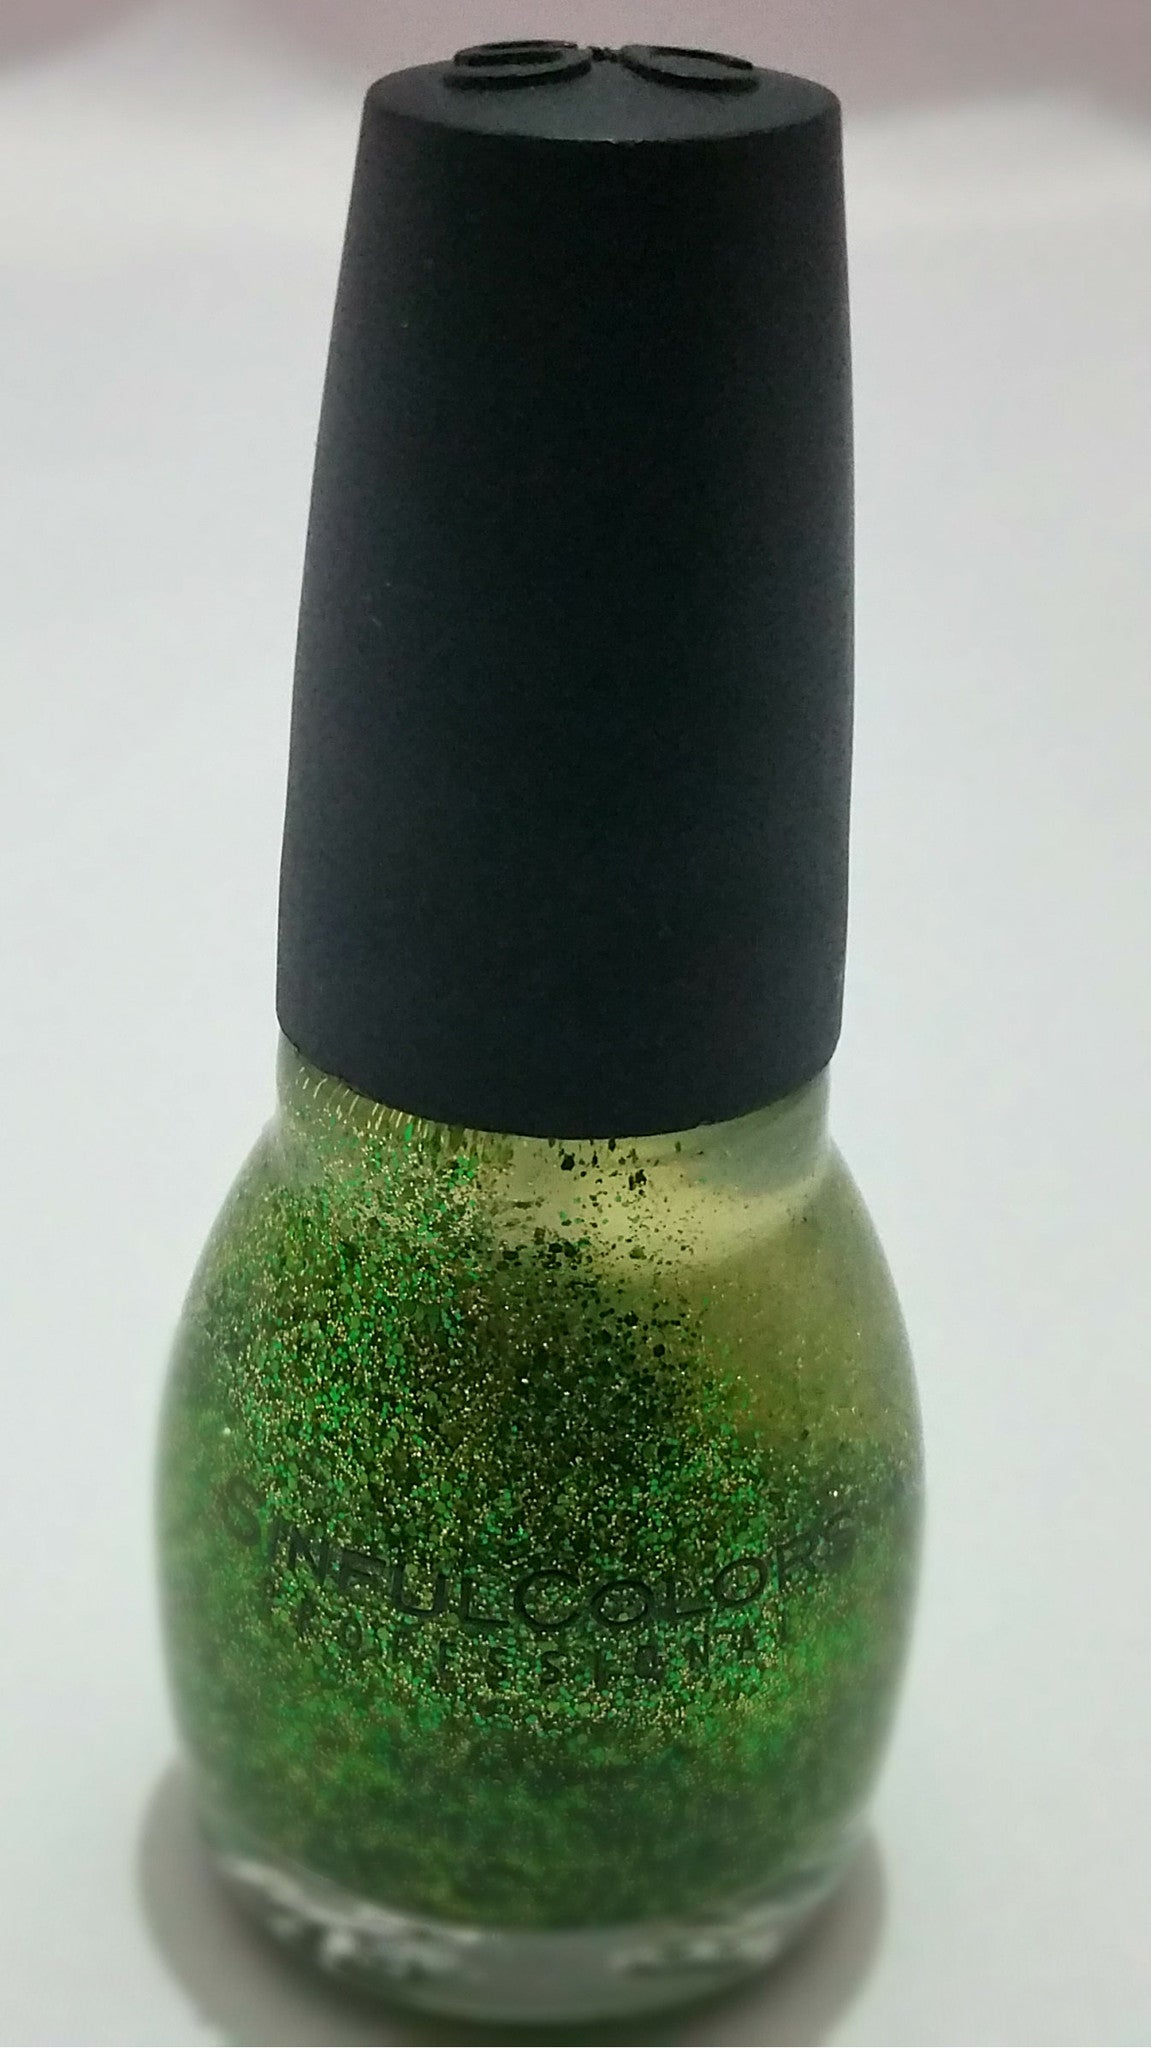 Sinful colors shimmery gold/green nail polish – TROPICALMISS